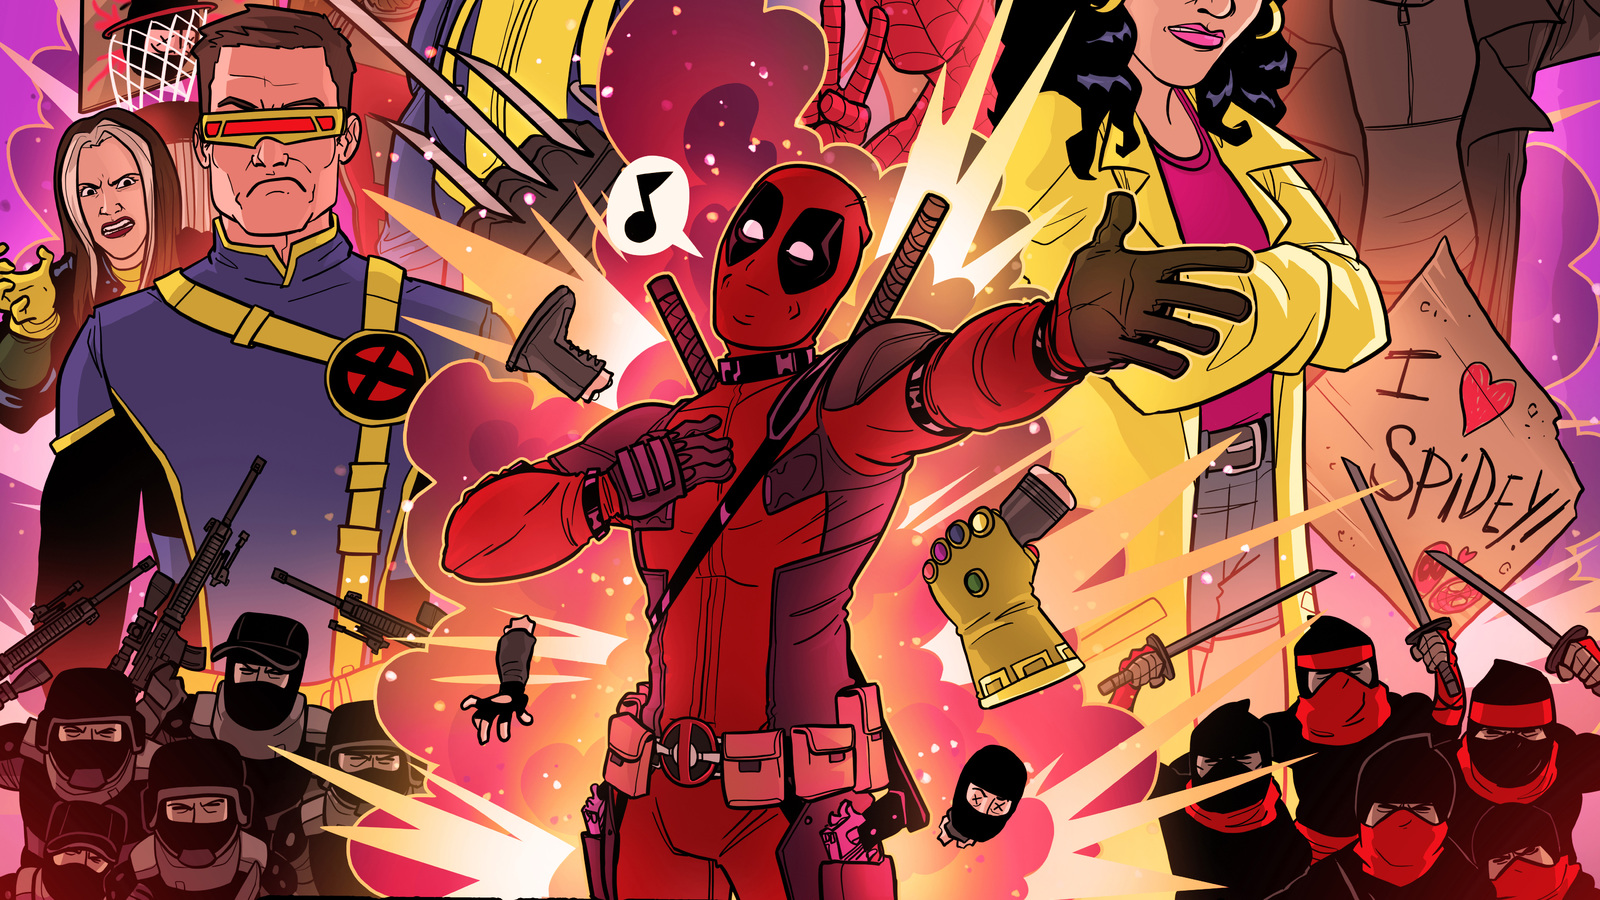 deadpool-the-musical-2-ultimate-disney-parody-2018-n5.jpg